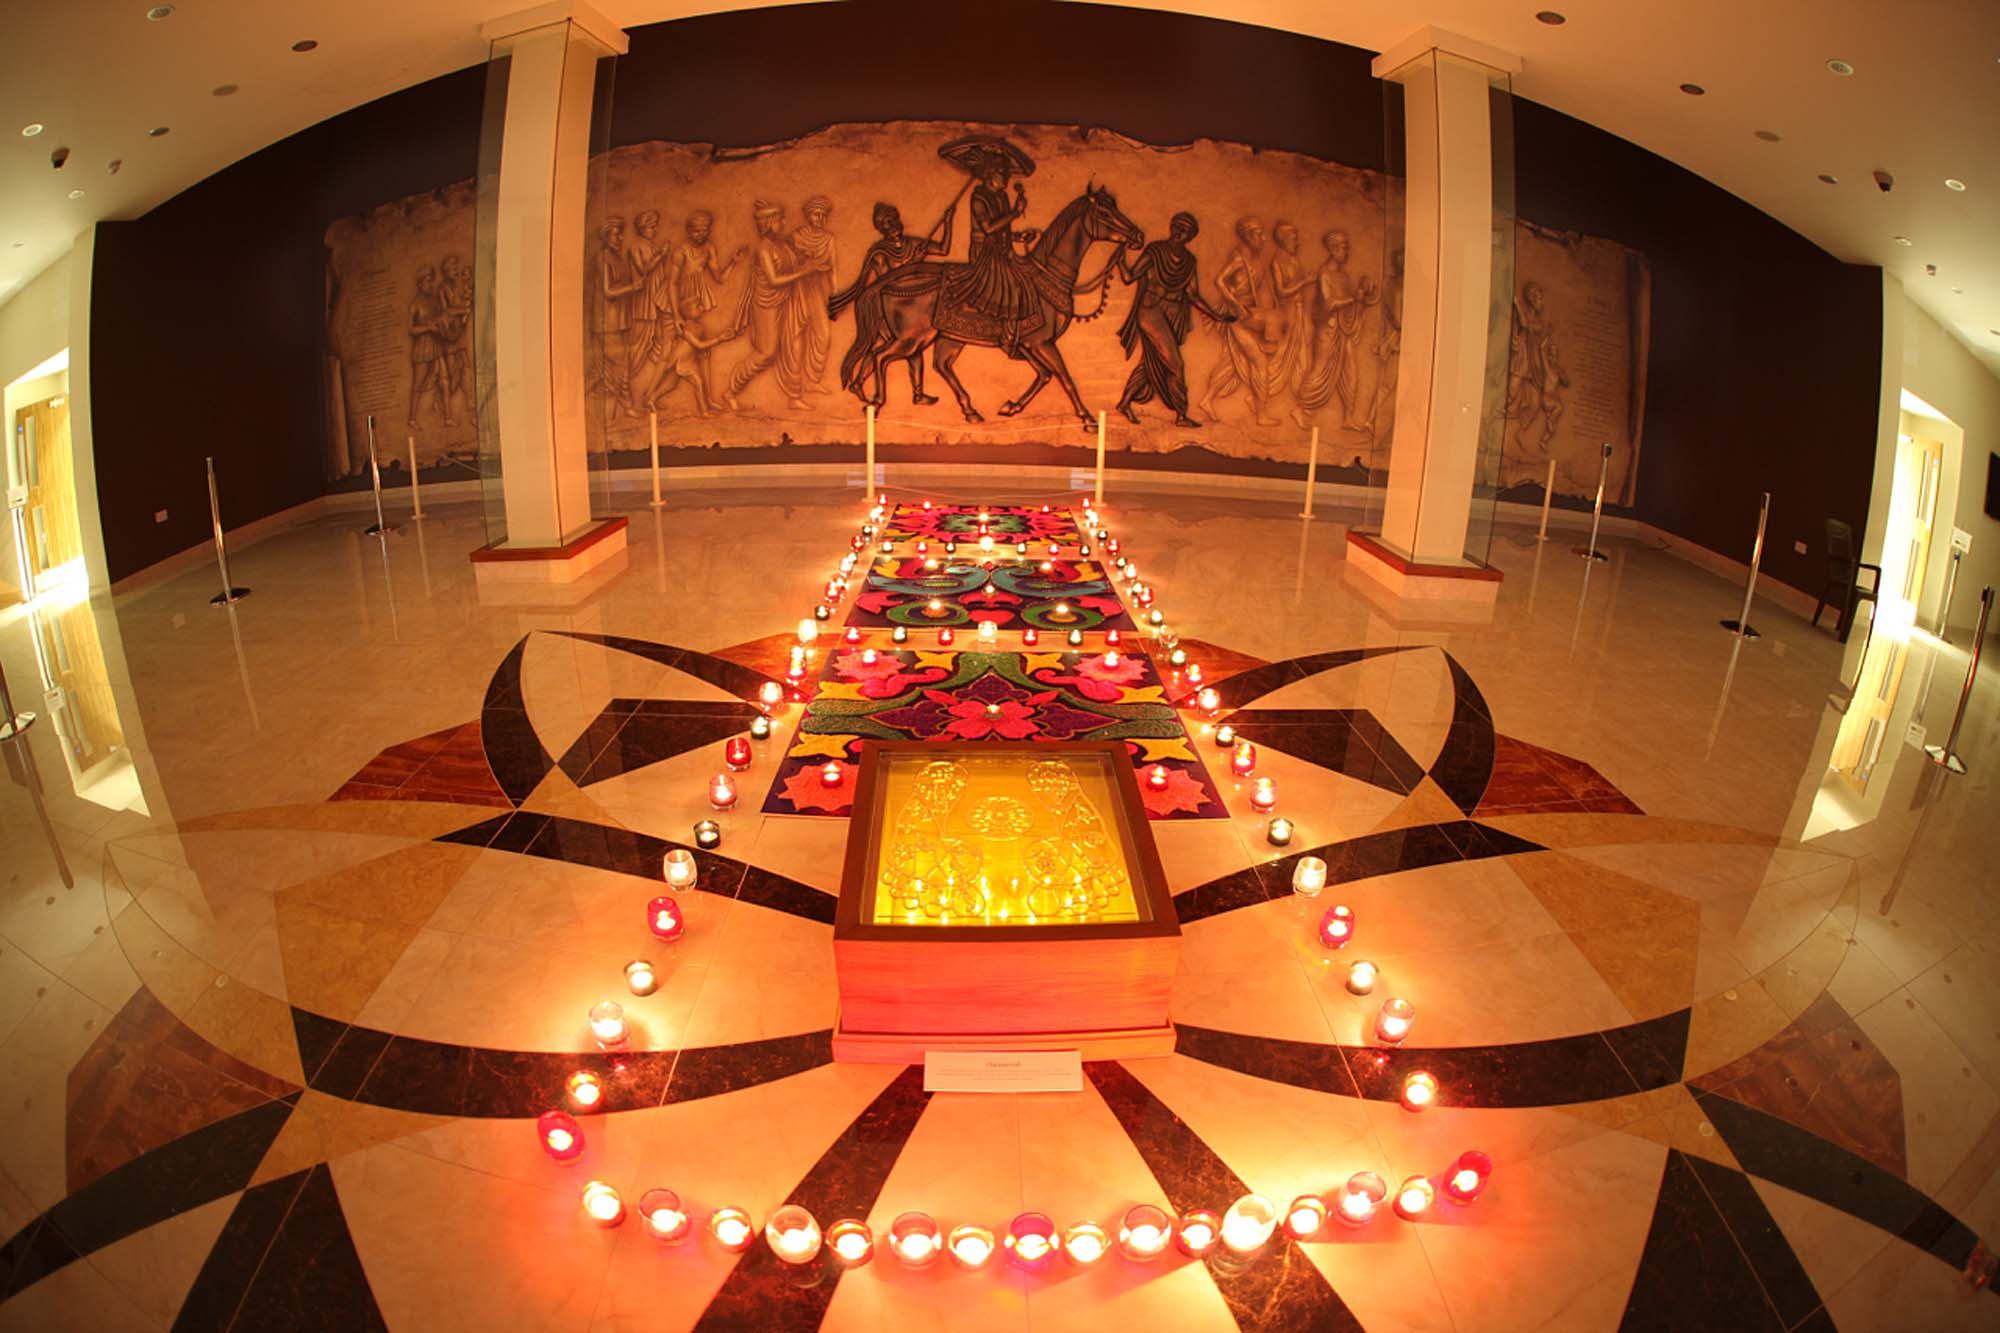 The mandir entrance hall during Diwali celebrations - BAPS Mandir